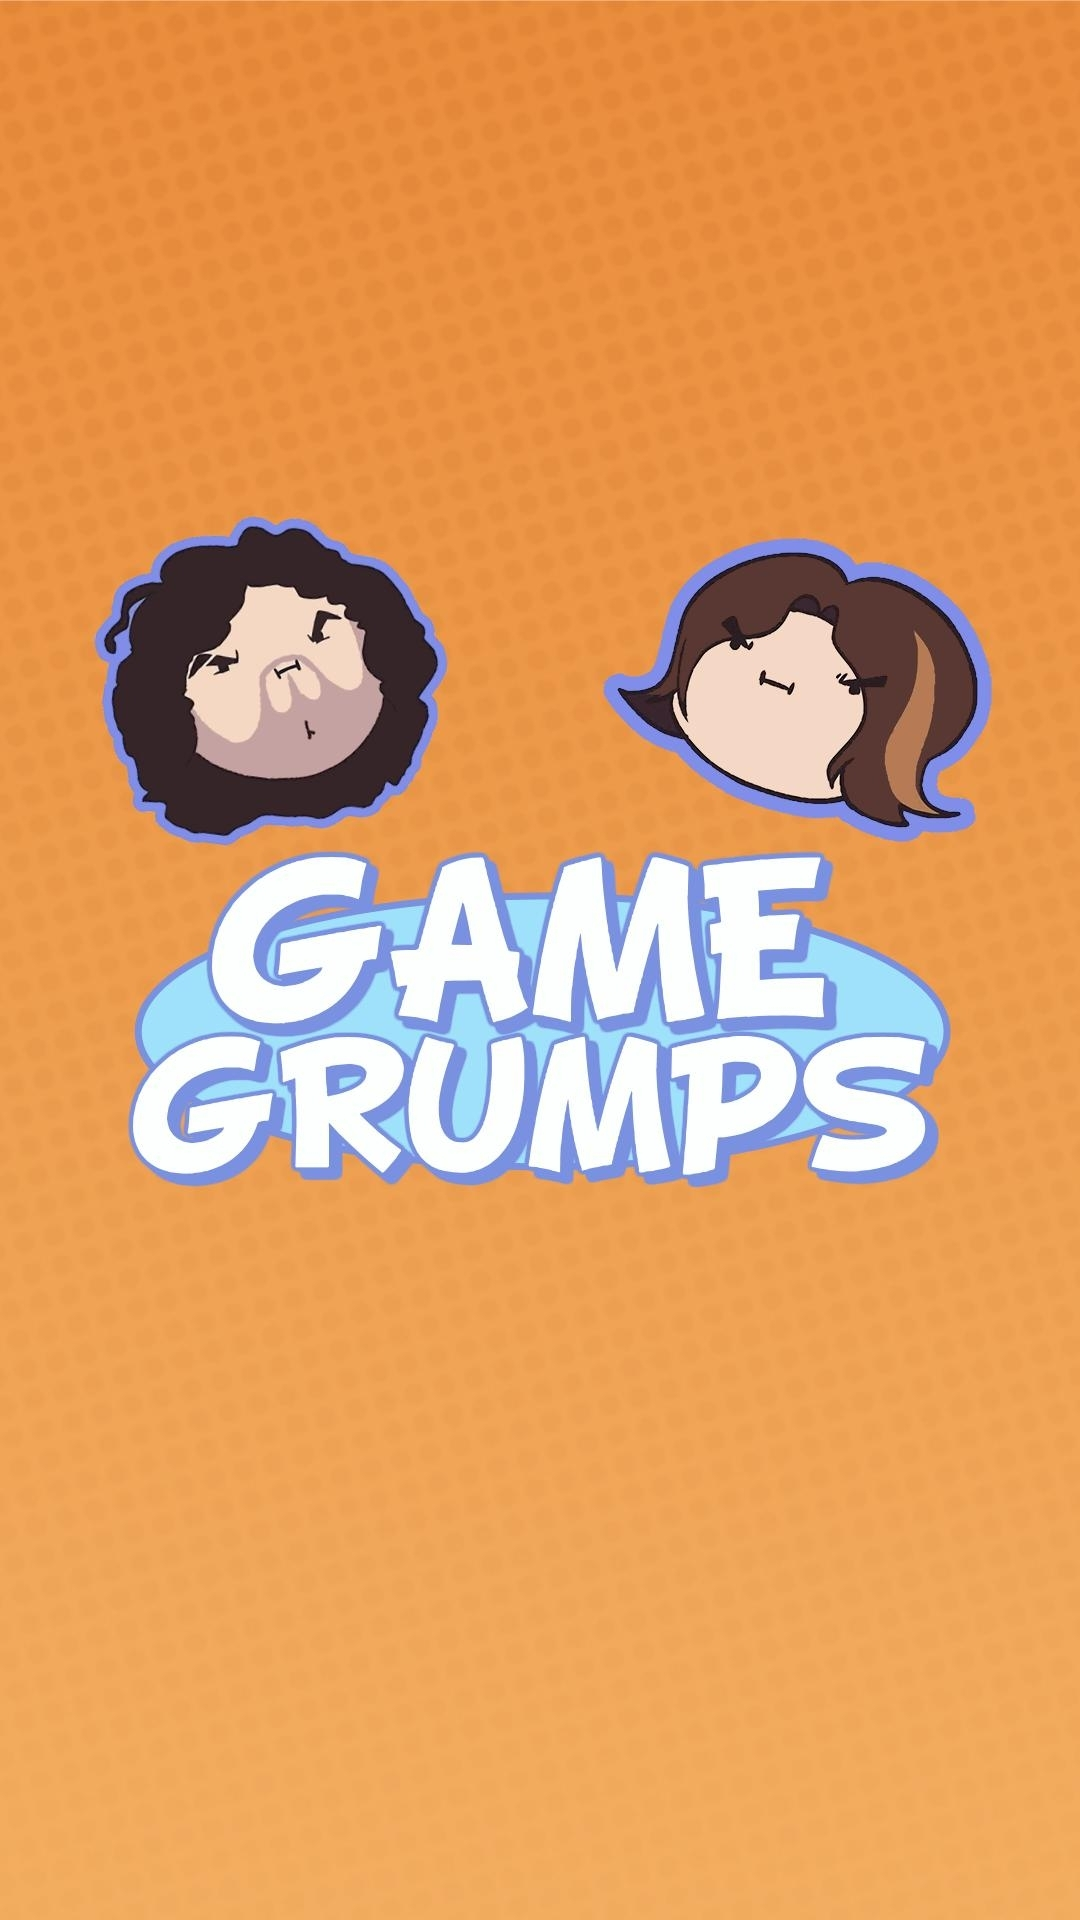 mobile wallpapers for android? : gamegrumps